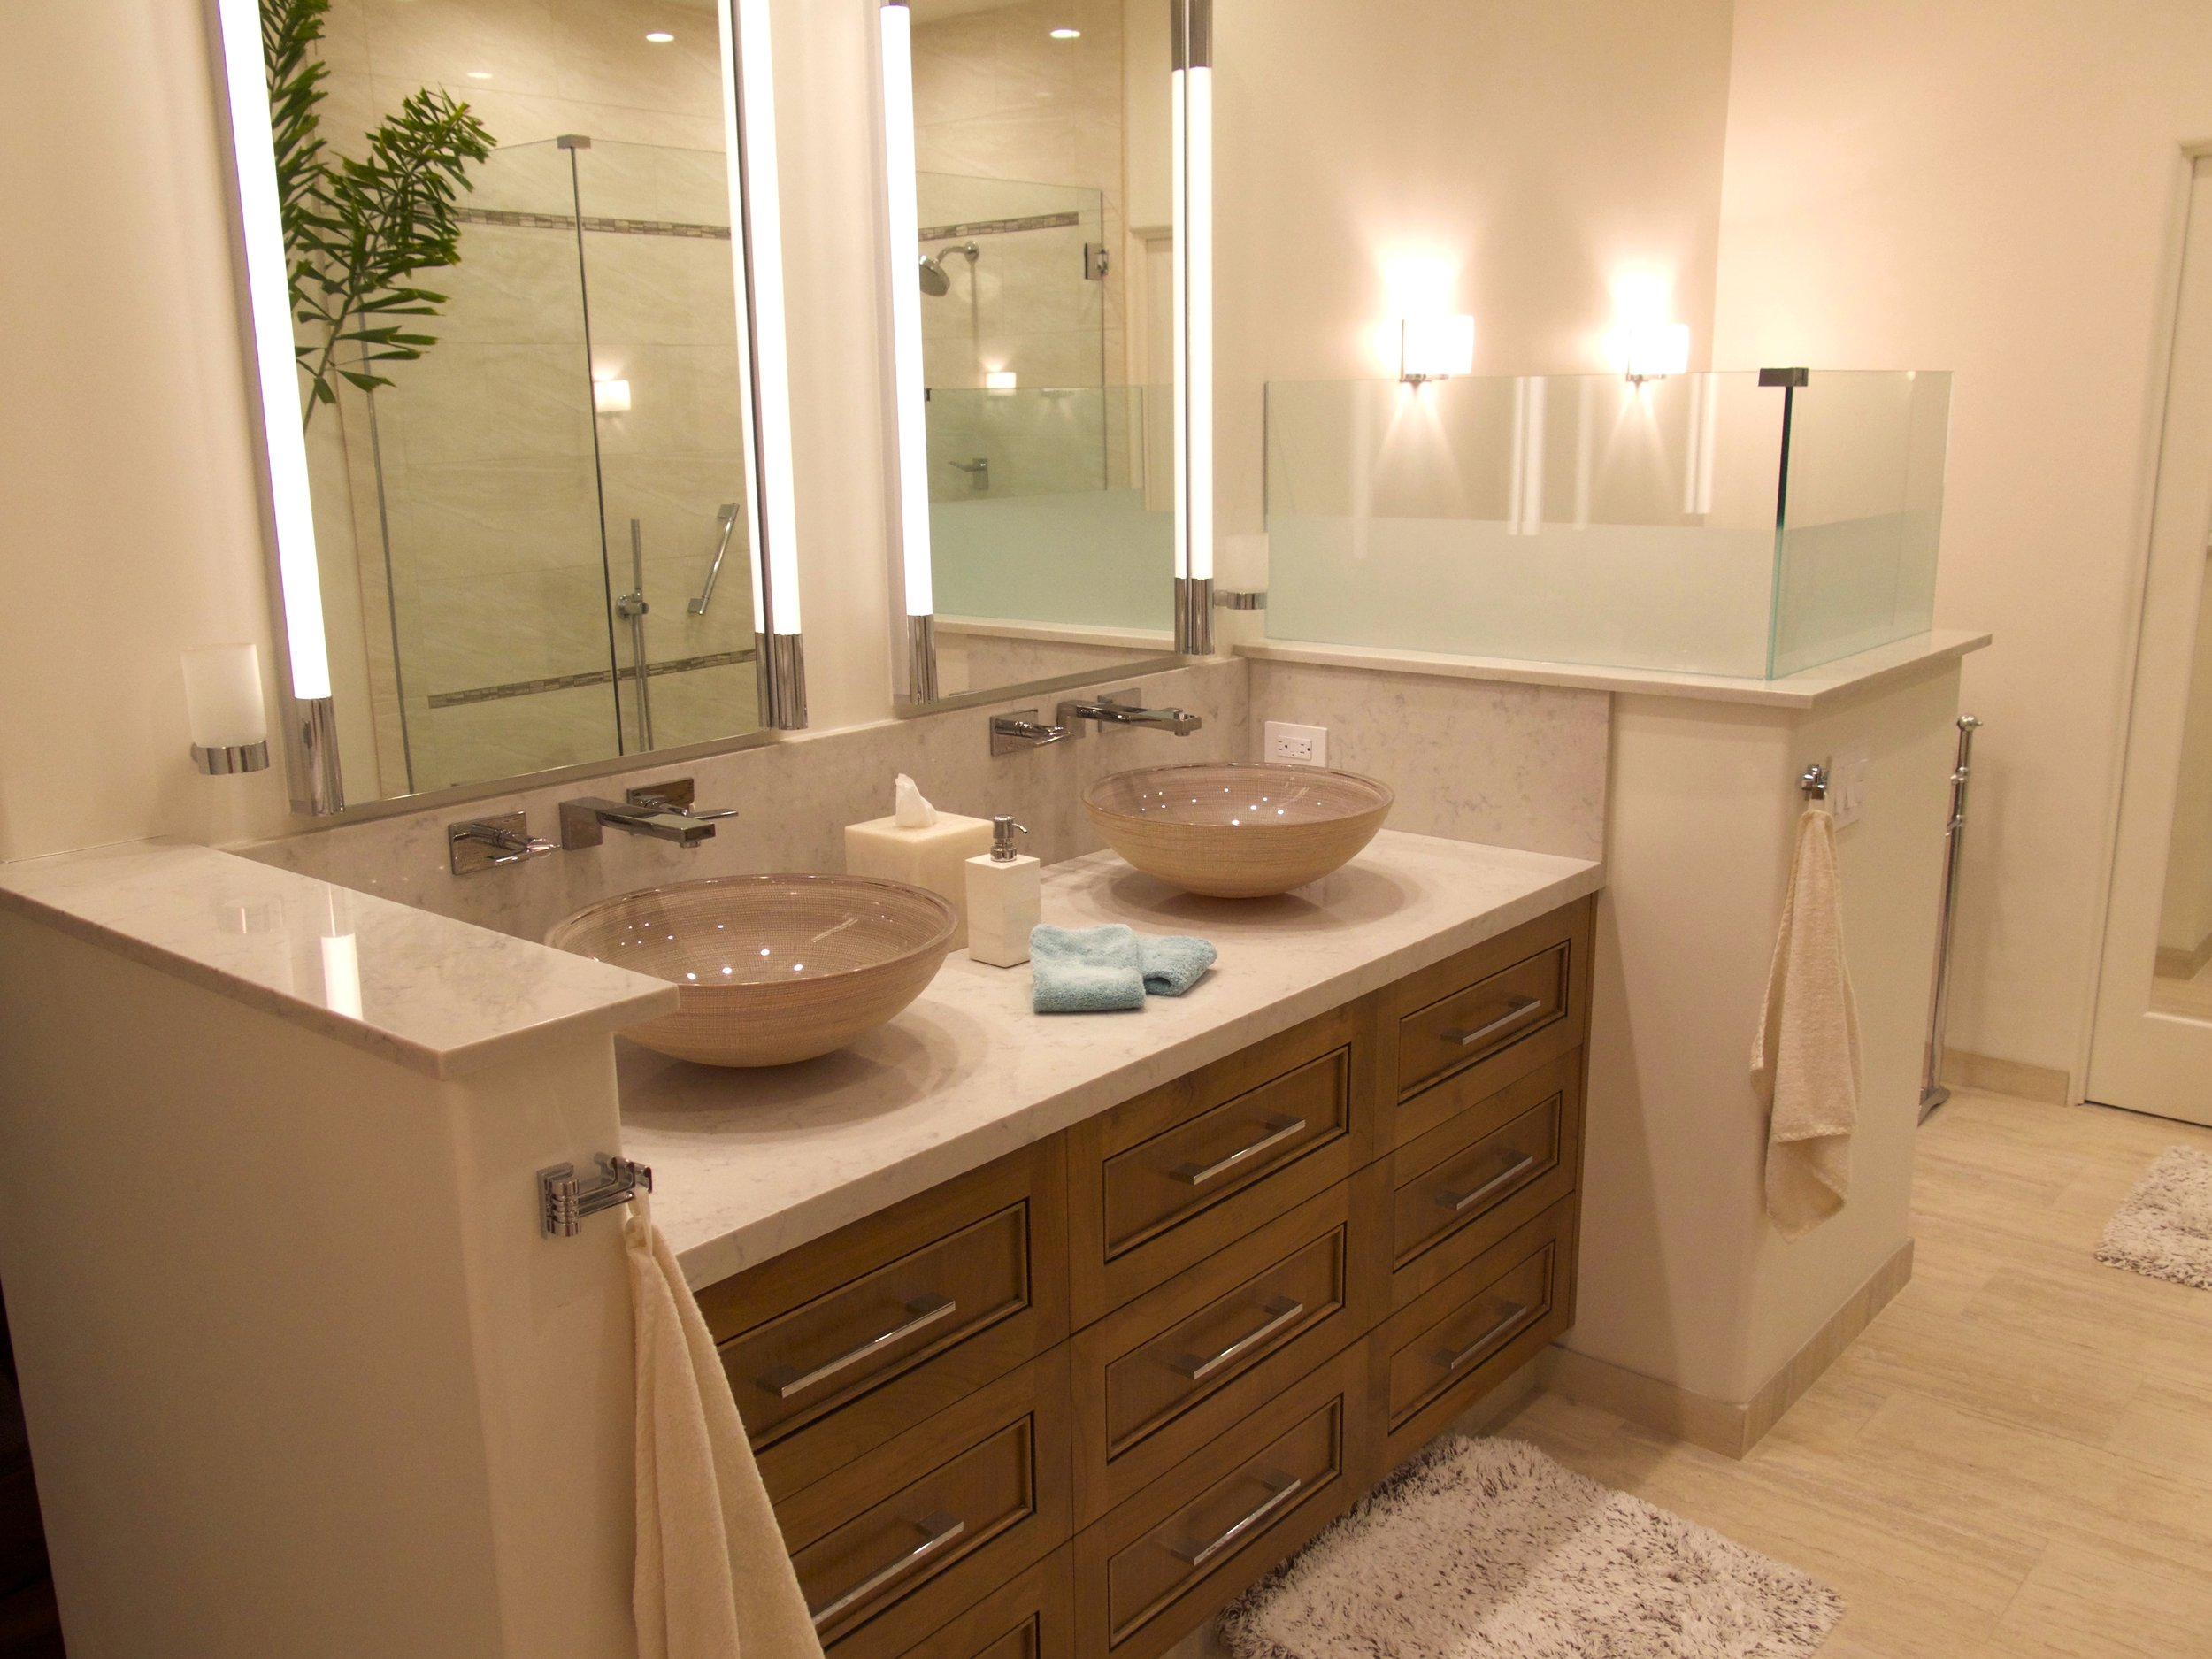 OBSERVATION - In this master bathroom remodel we took the space down to the studs, removed walls, rethought layout and installed all new bright materials. The homeowners wanted a fresh new look that was warm, inviting, and reminiscent of a spa that you wanted to come and relax in.